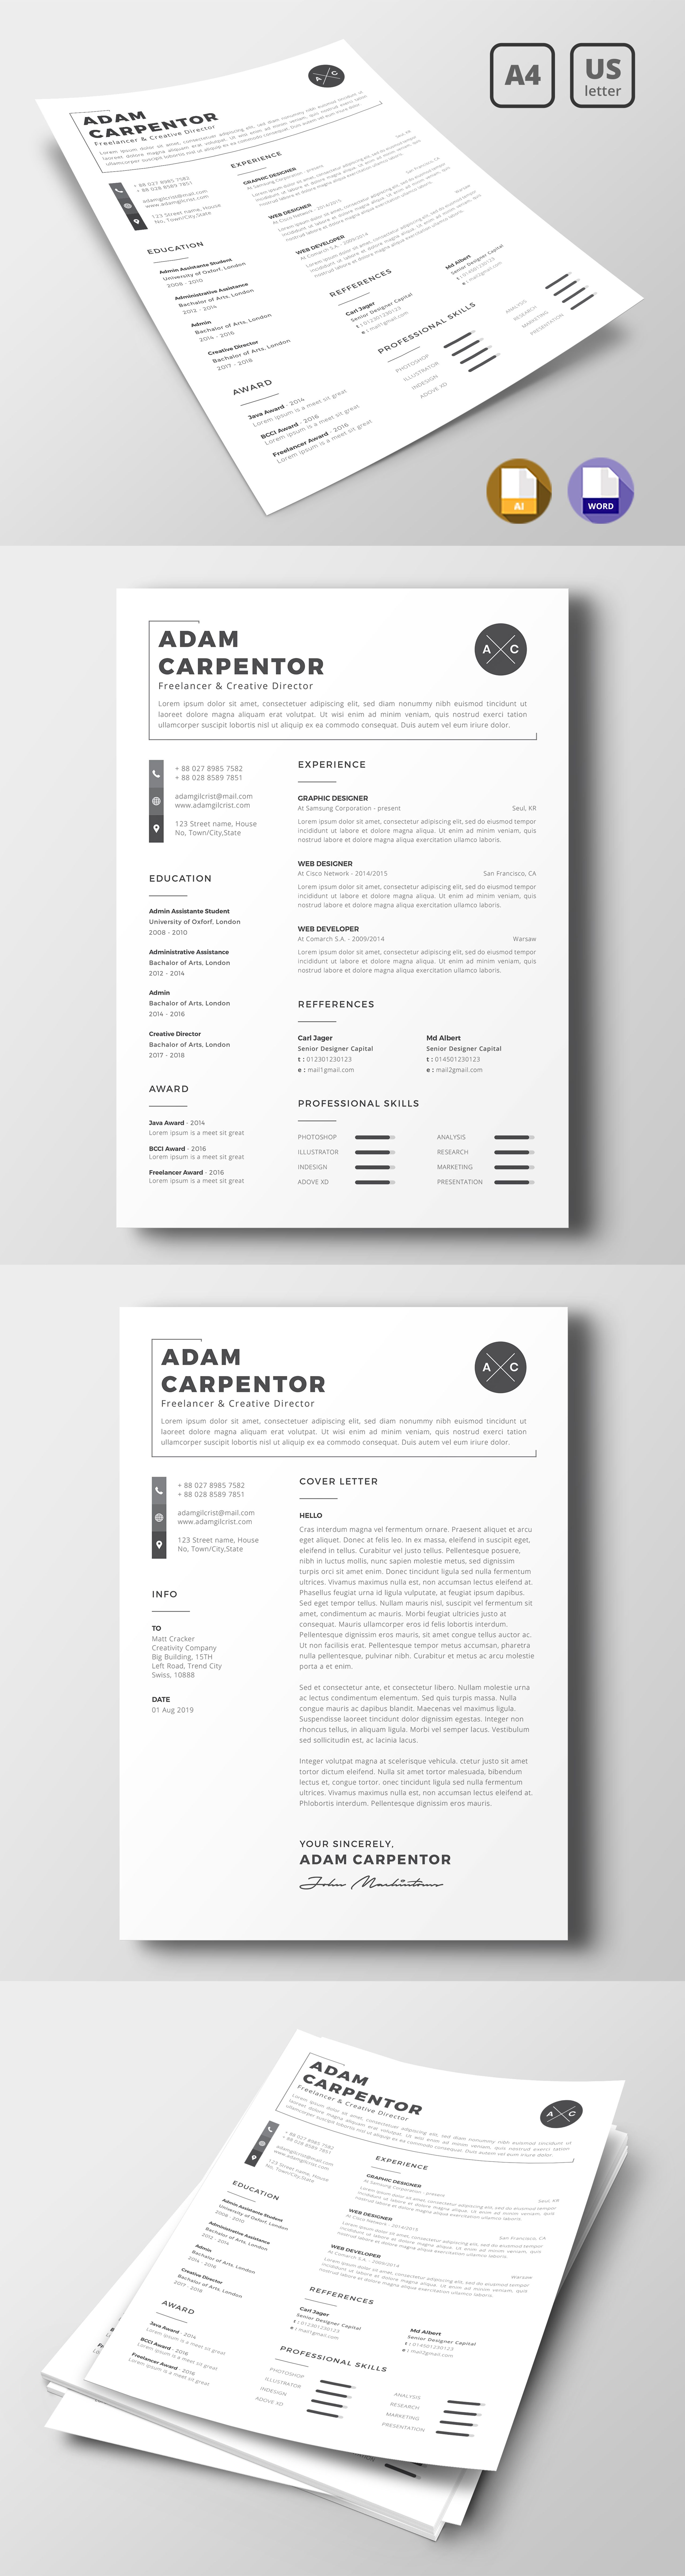 Adam Carpenton Resume Template Templates, Resume, Resume